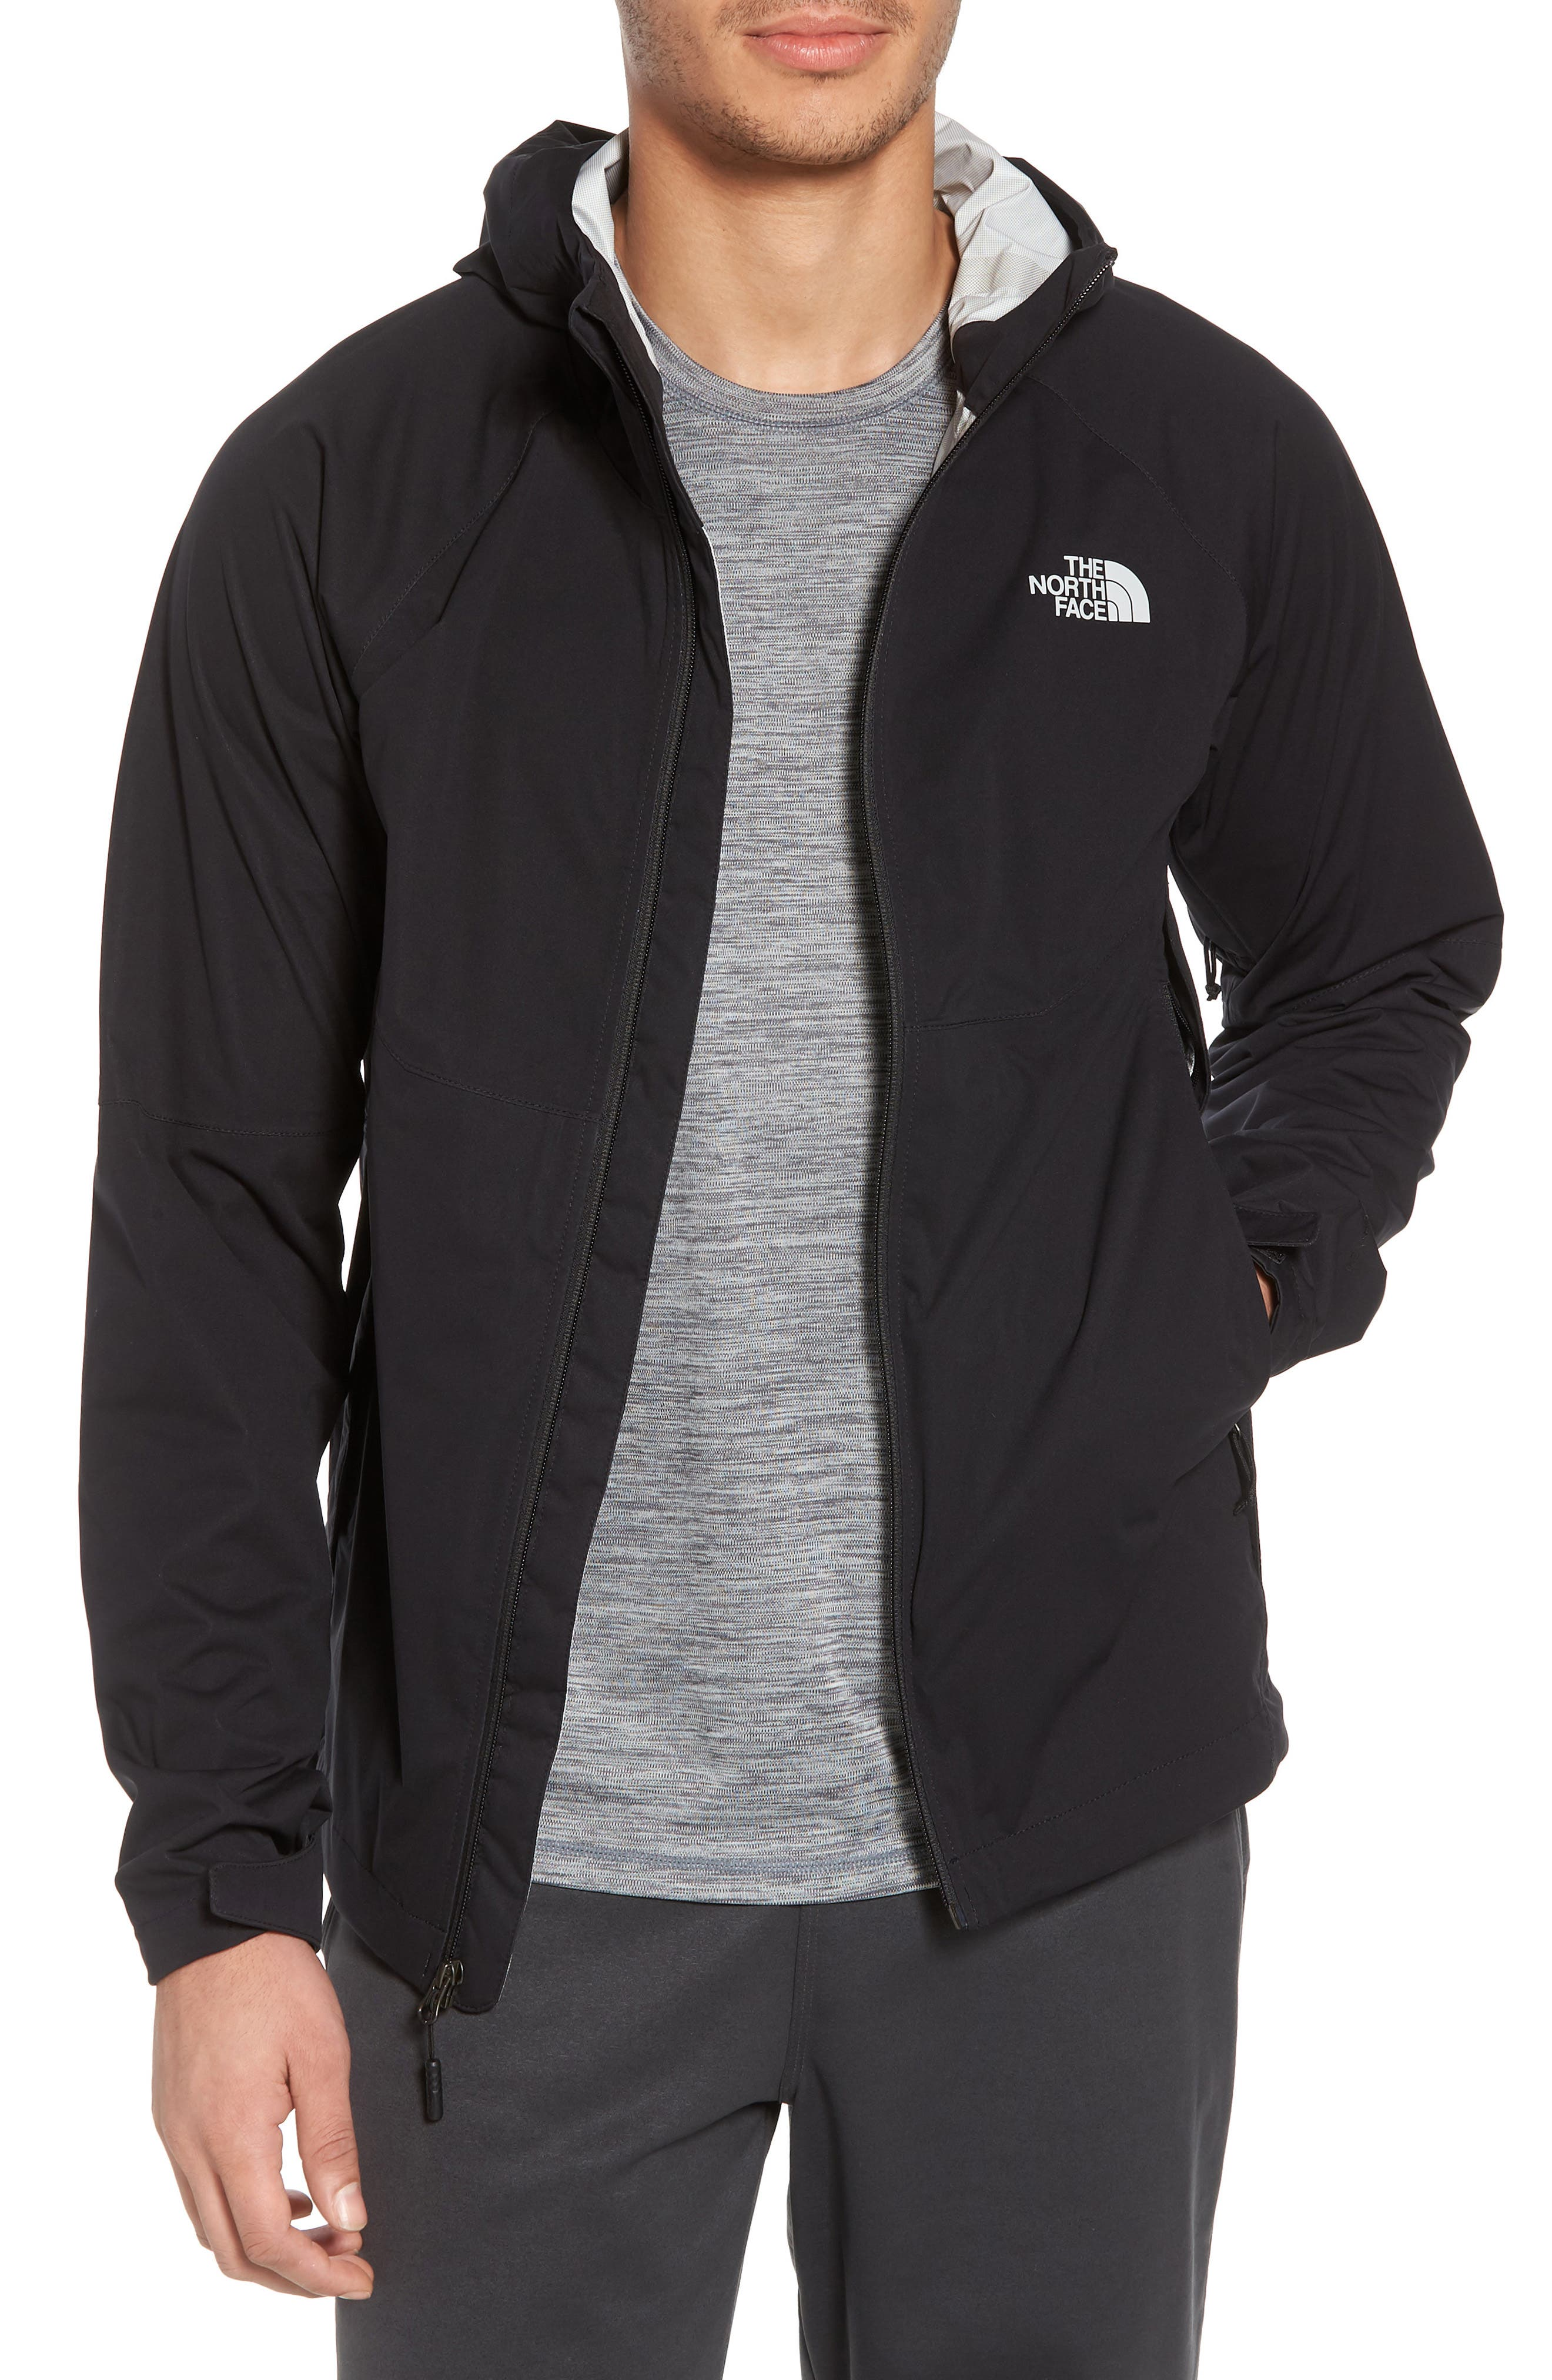 THE NORTH FACE Allproof Stretch Hooded Rain Jacket, Main, color, 001